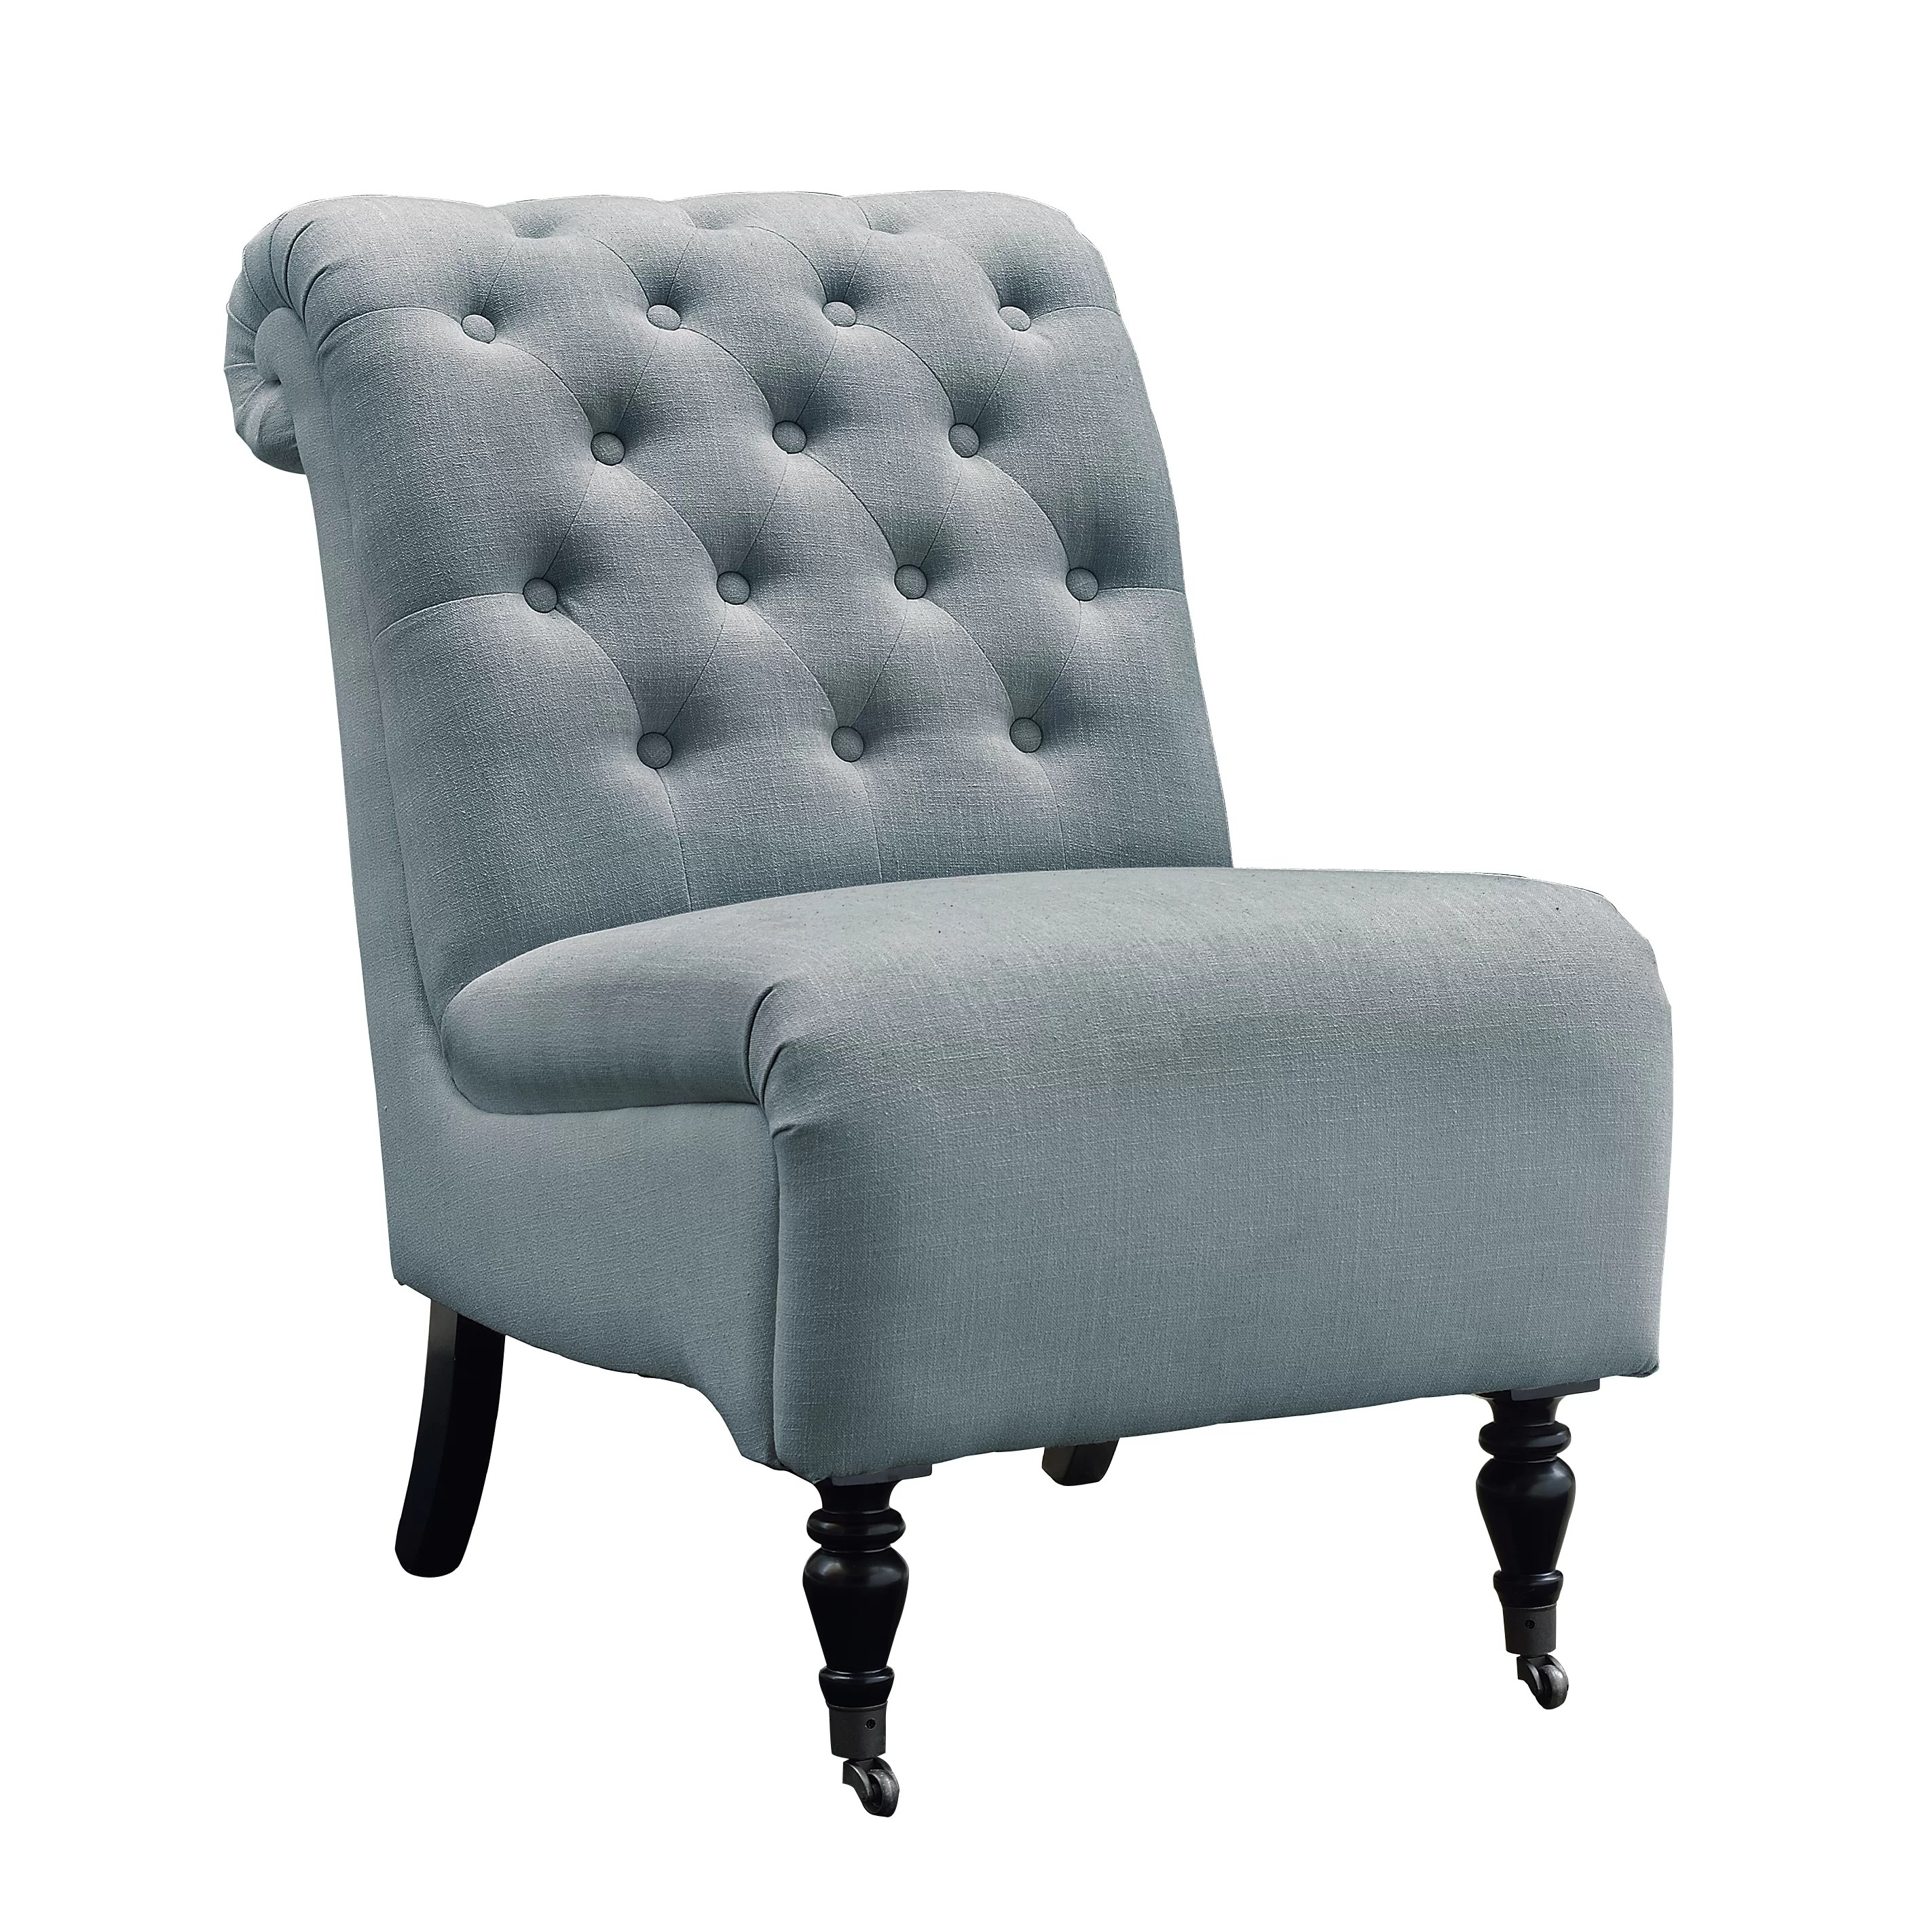 Tufted Slipper Chair Alcott Hill Columbus Roll Back Tufted Slipper Chair